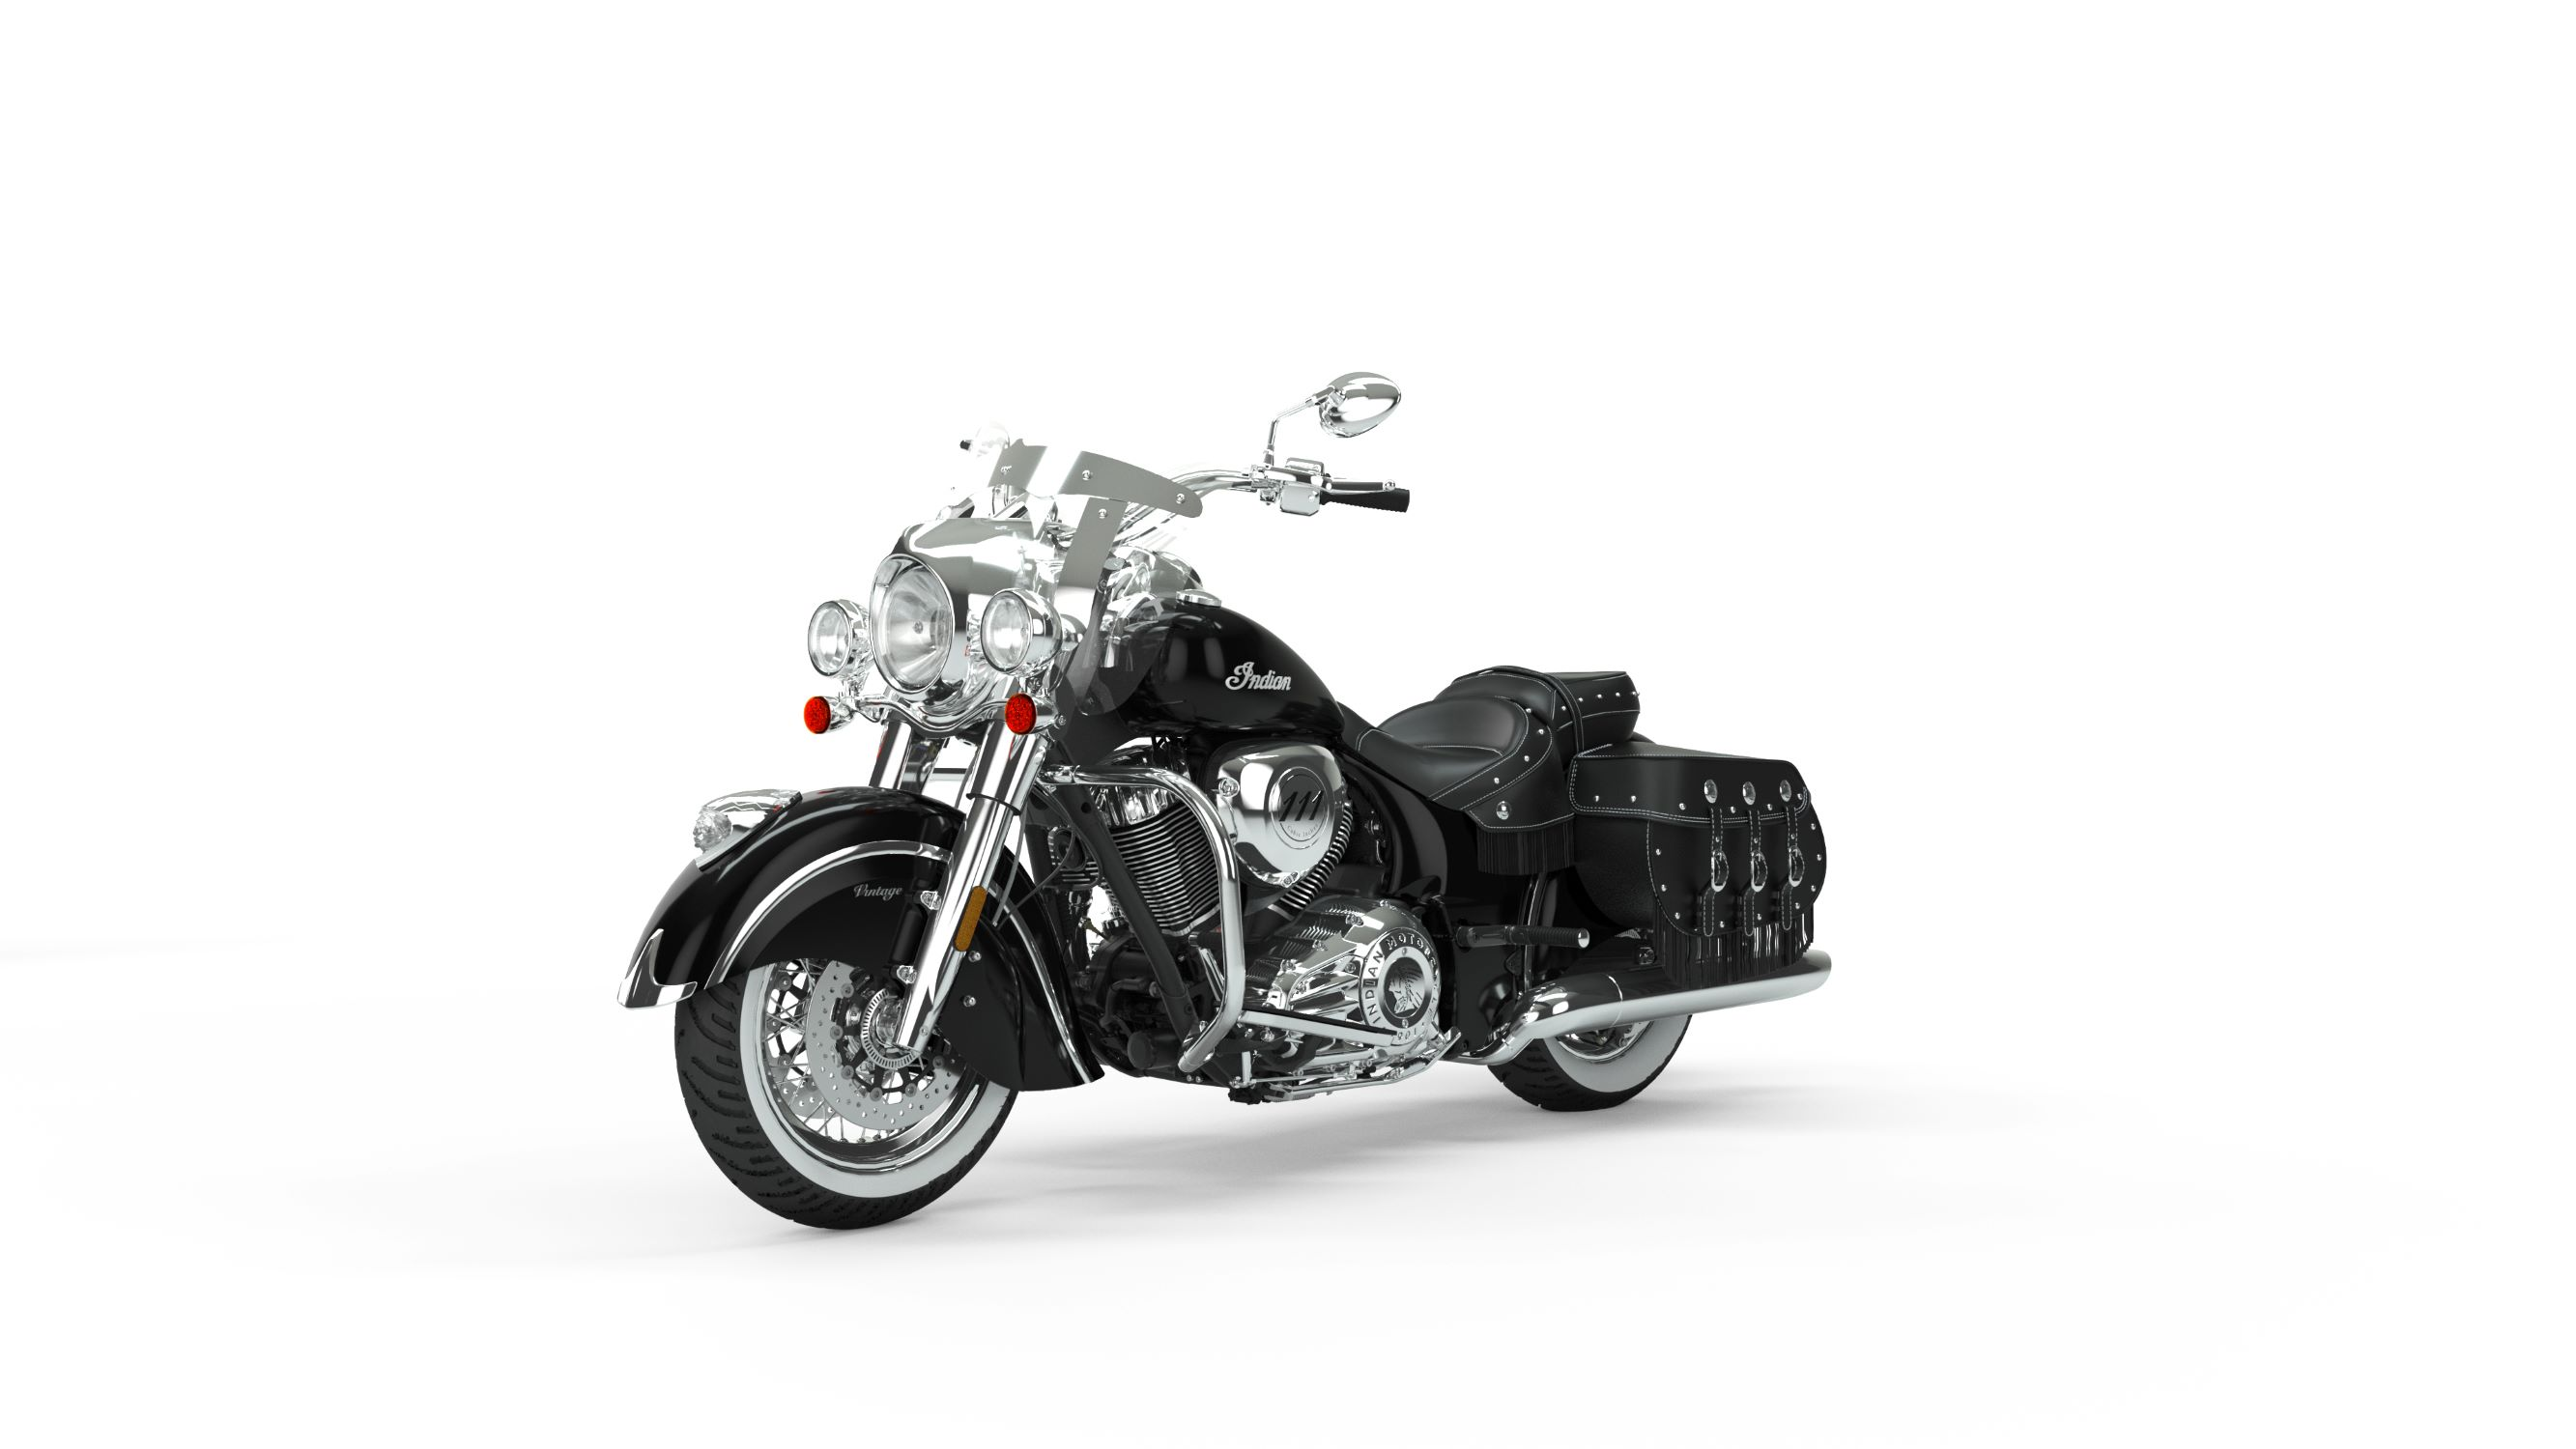 2019 Indian Chief Vintage Thunder Black Front 3Q